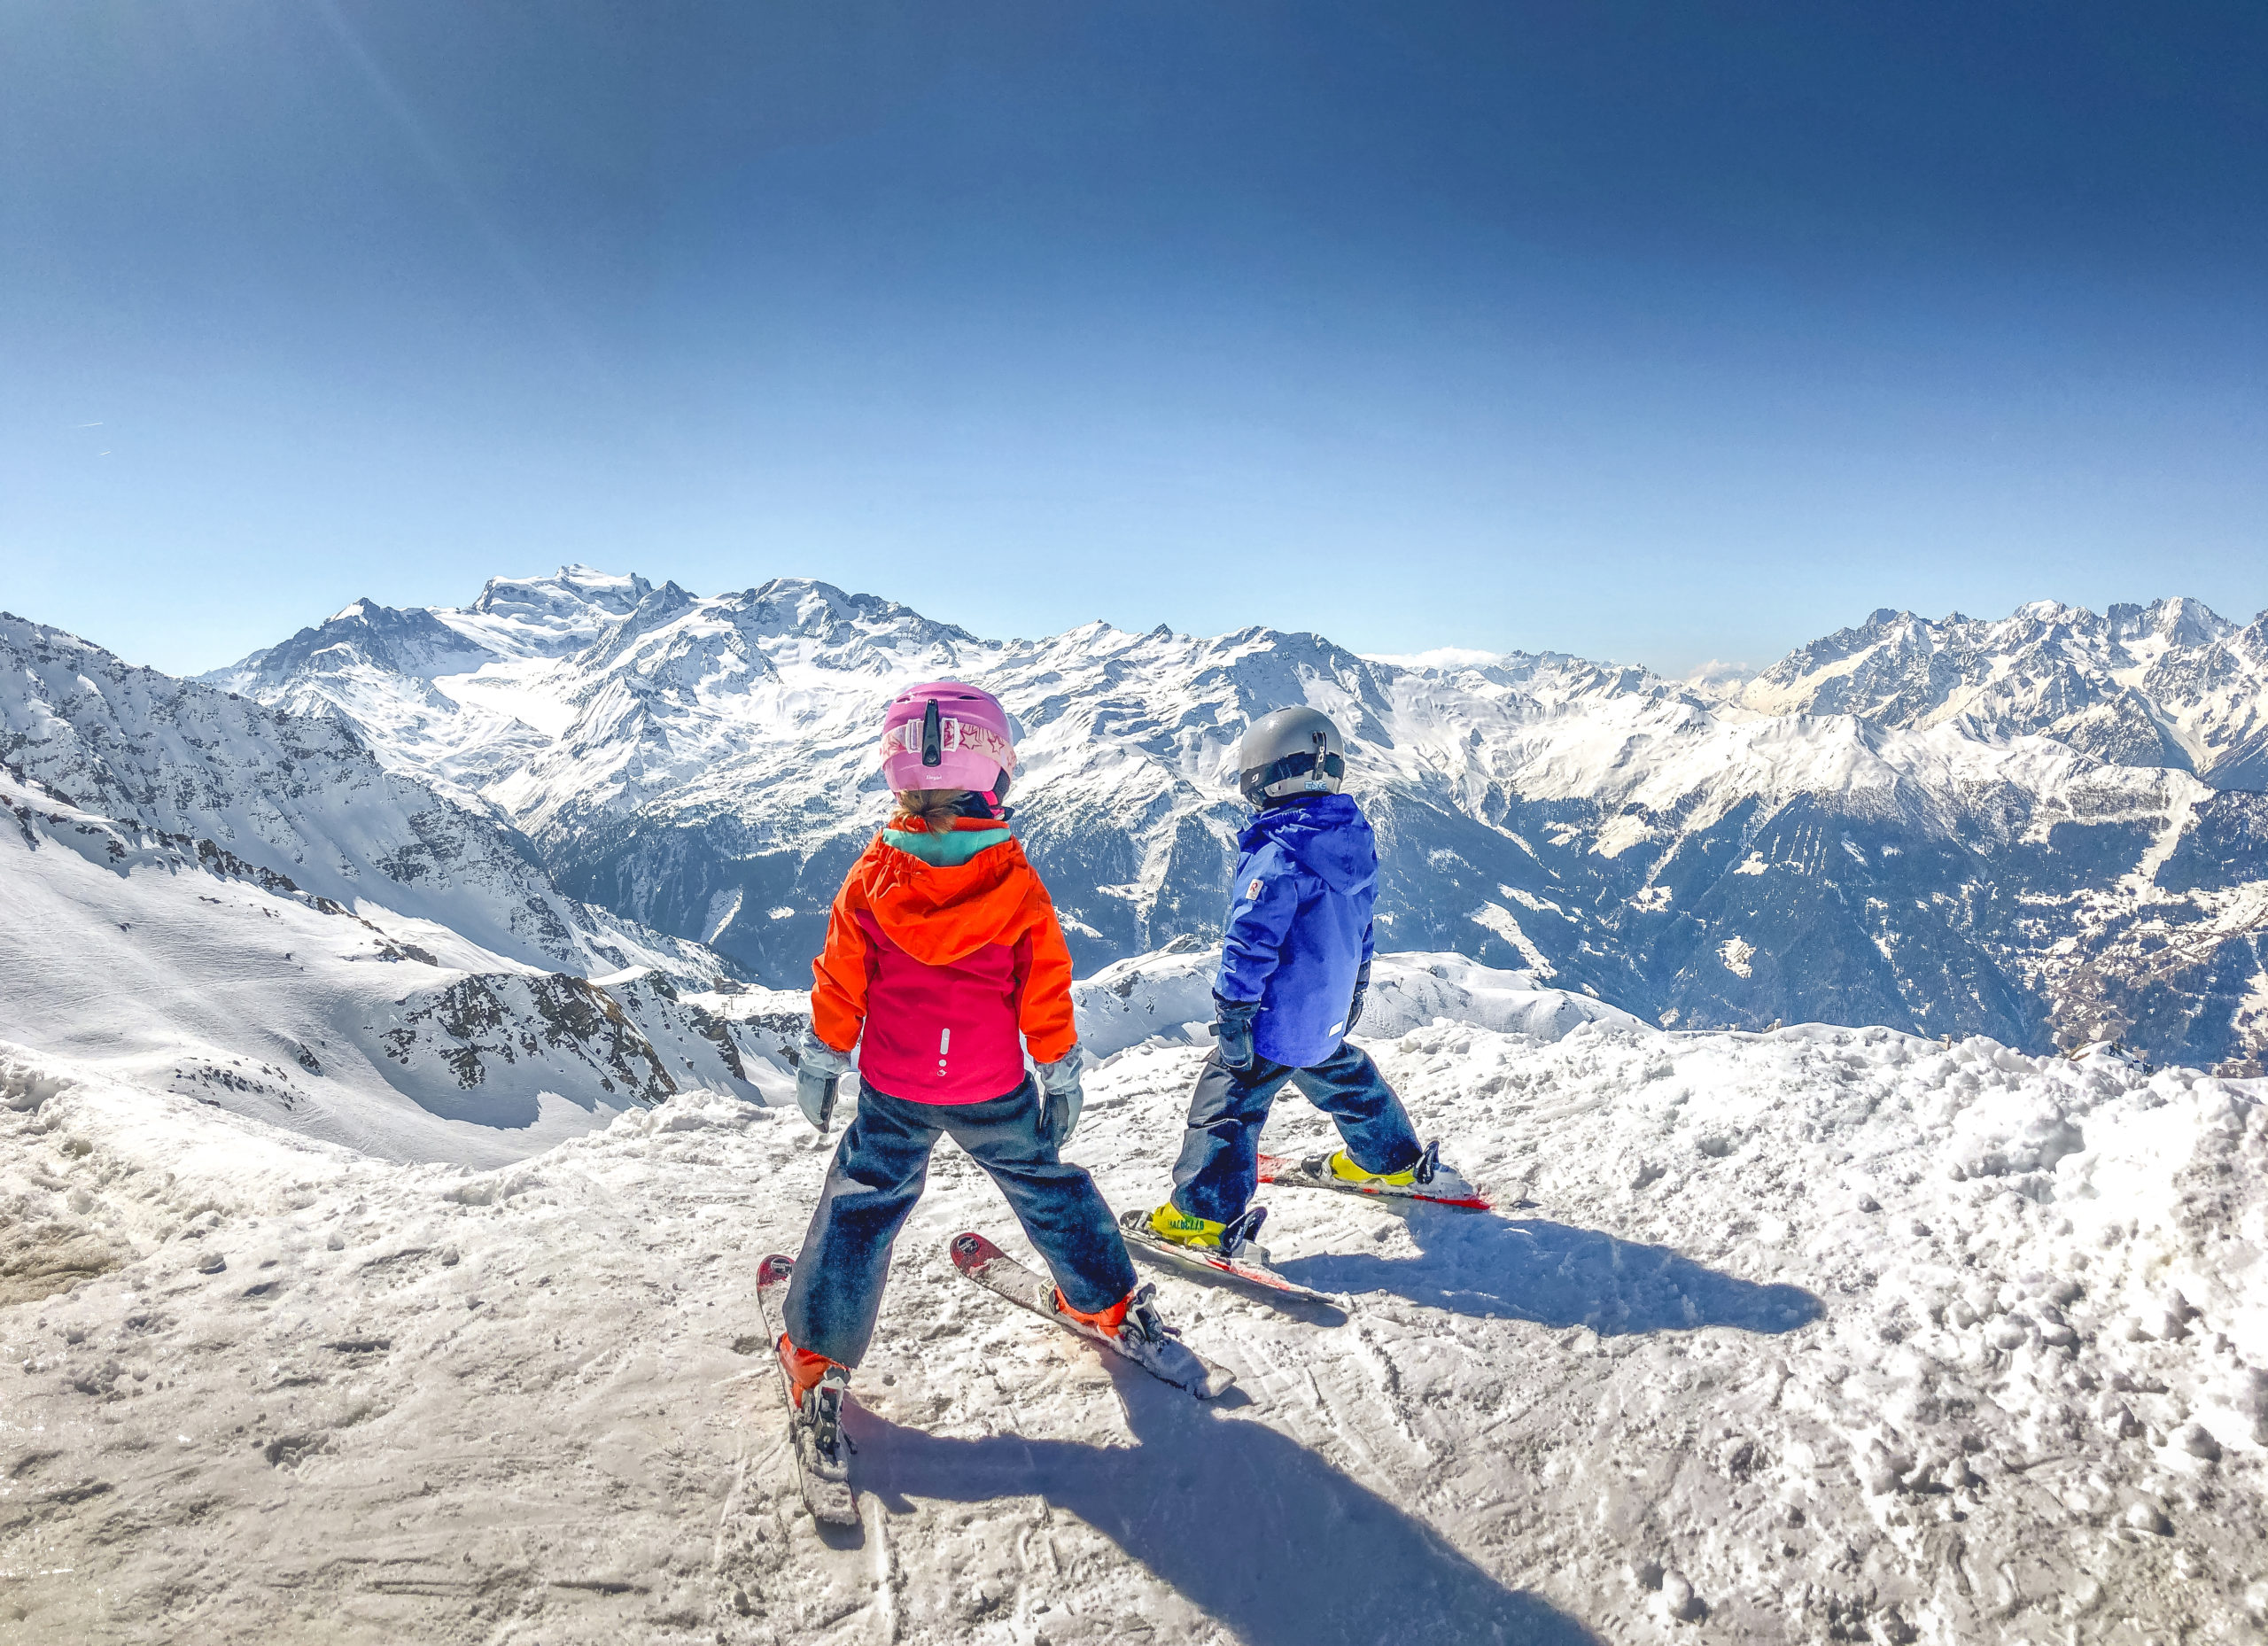 boy and girl on top of the mountain looking away from the camera wearing red and orange and blue jackets. Pink helmet, yellow and orange boots in skiis.